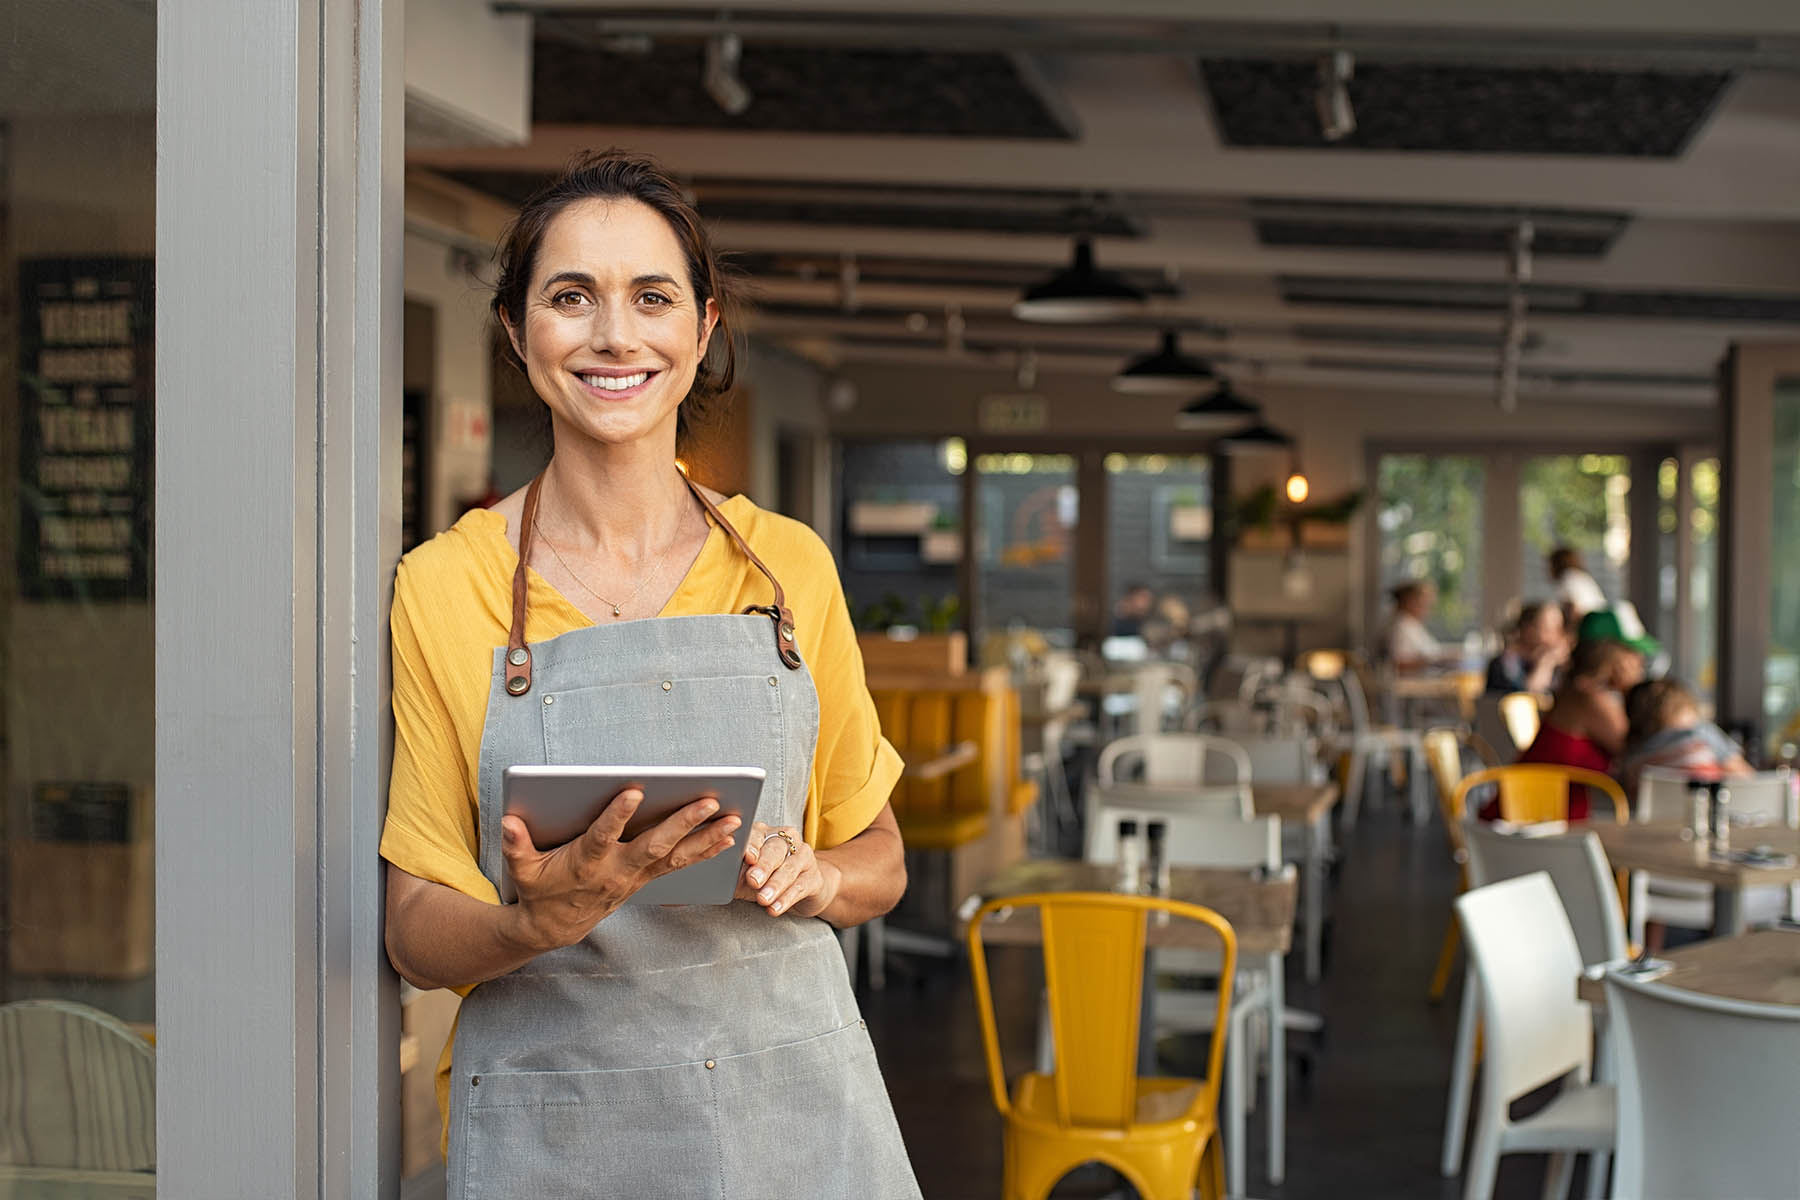 restaurant owner smiling at the camera in front of the restaurant holding a tablet in her hand